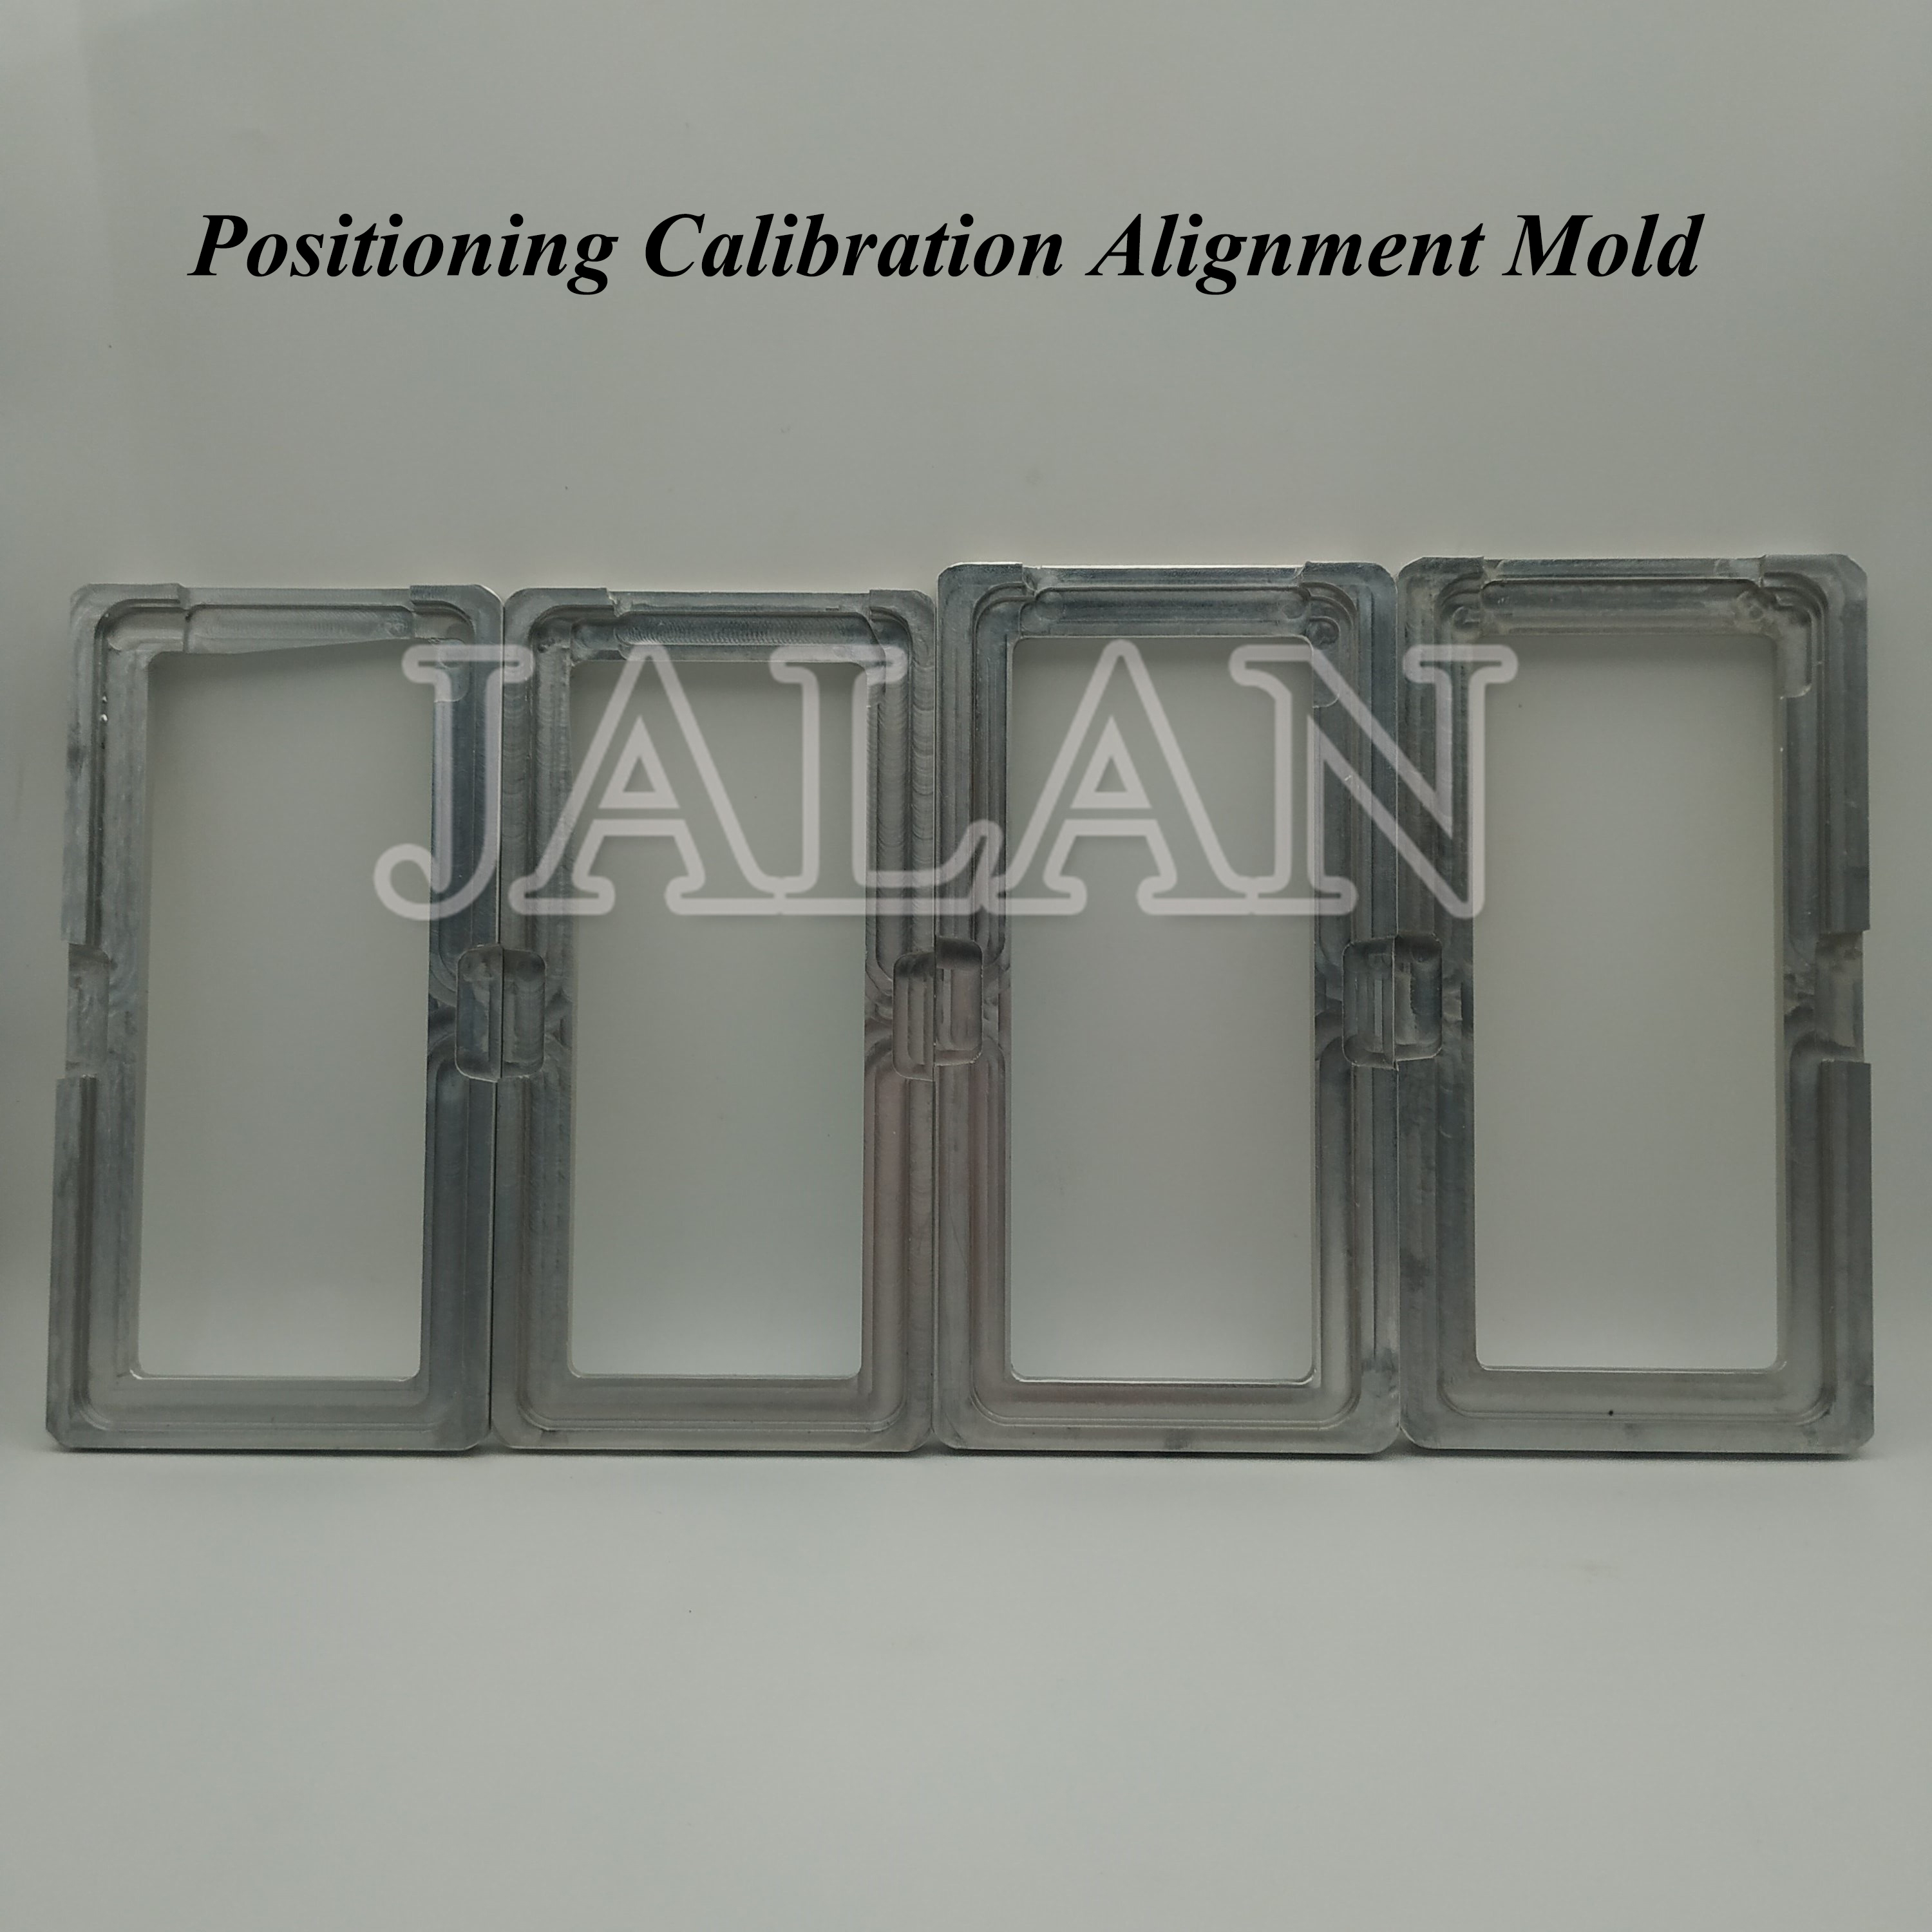 Alignment-Mold Calibration Metal Positioning Samsung LCD For A20/A30/A50/.. Outer-Glass